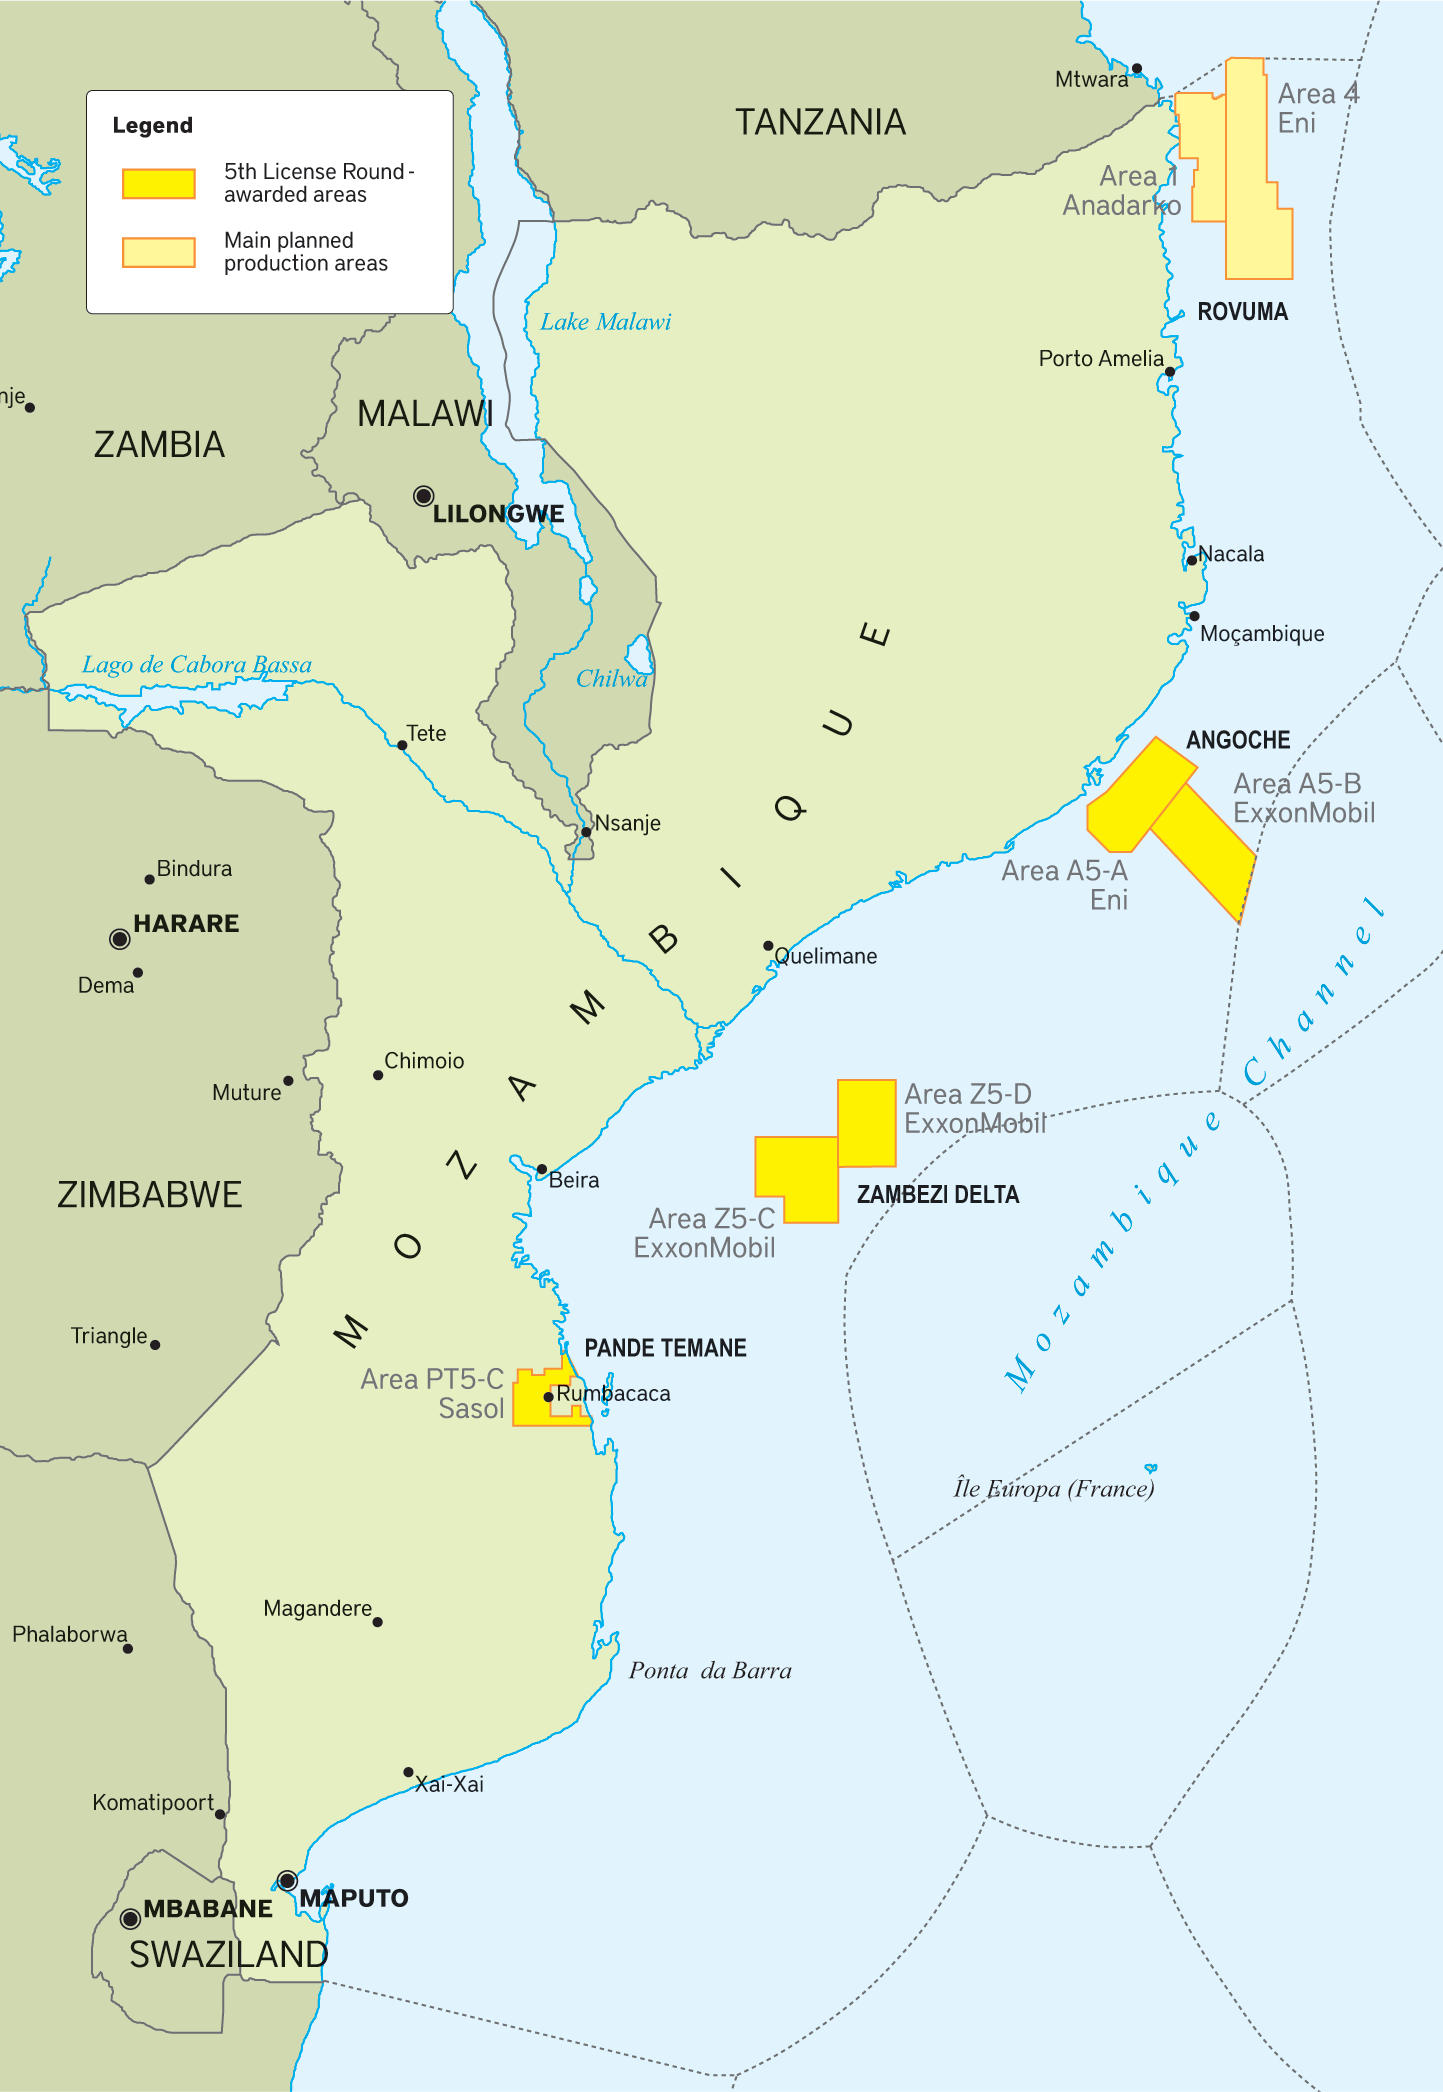 Big hitters betting on Mozambique to be global LNG player